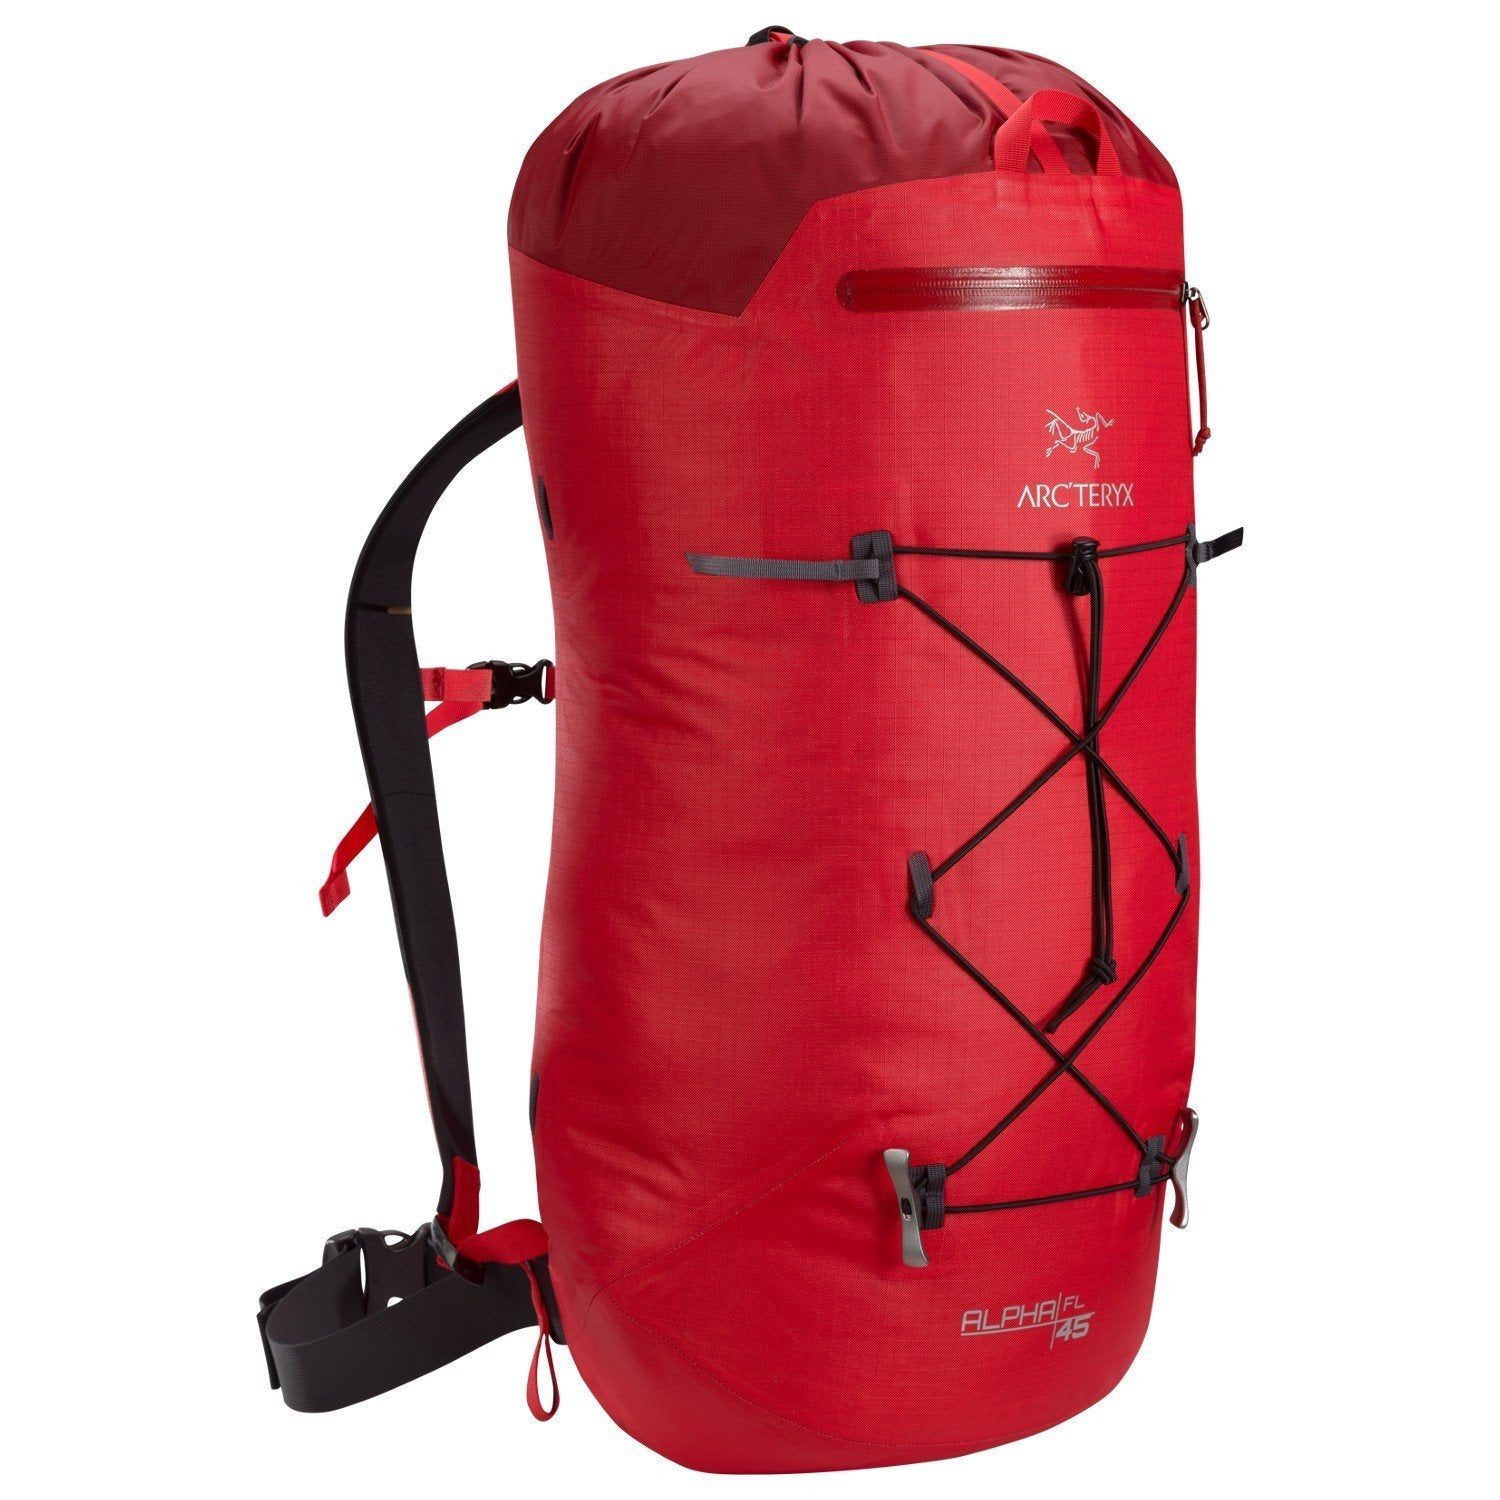 ArcTeryx Alpha FL 45 rucksack, in red colour